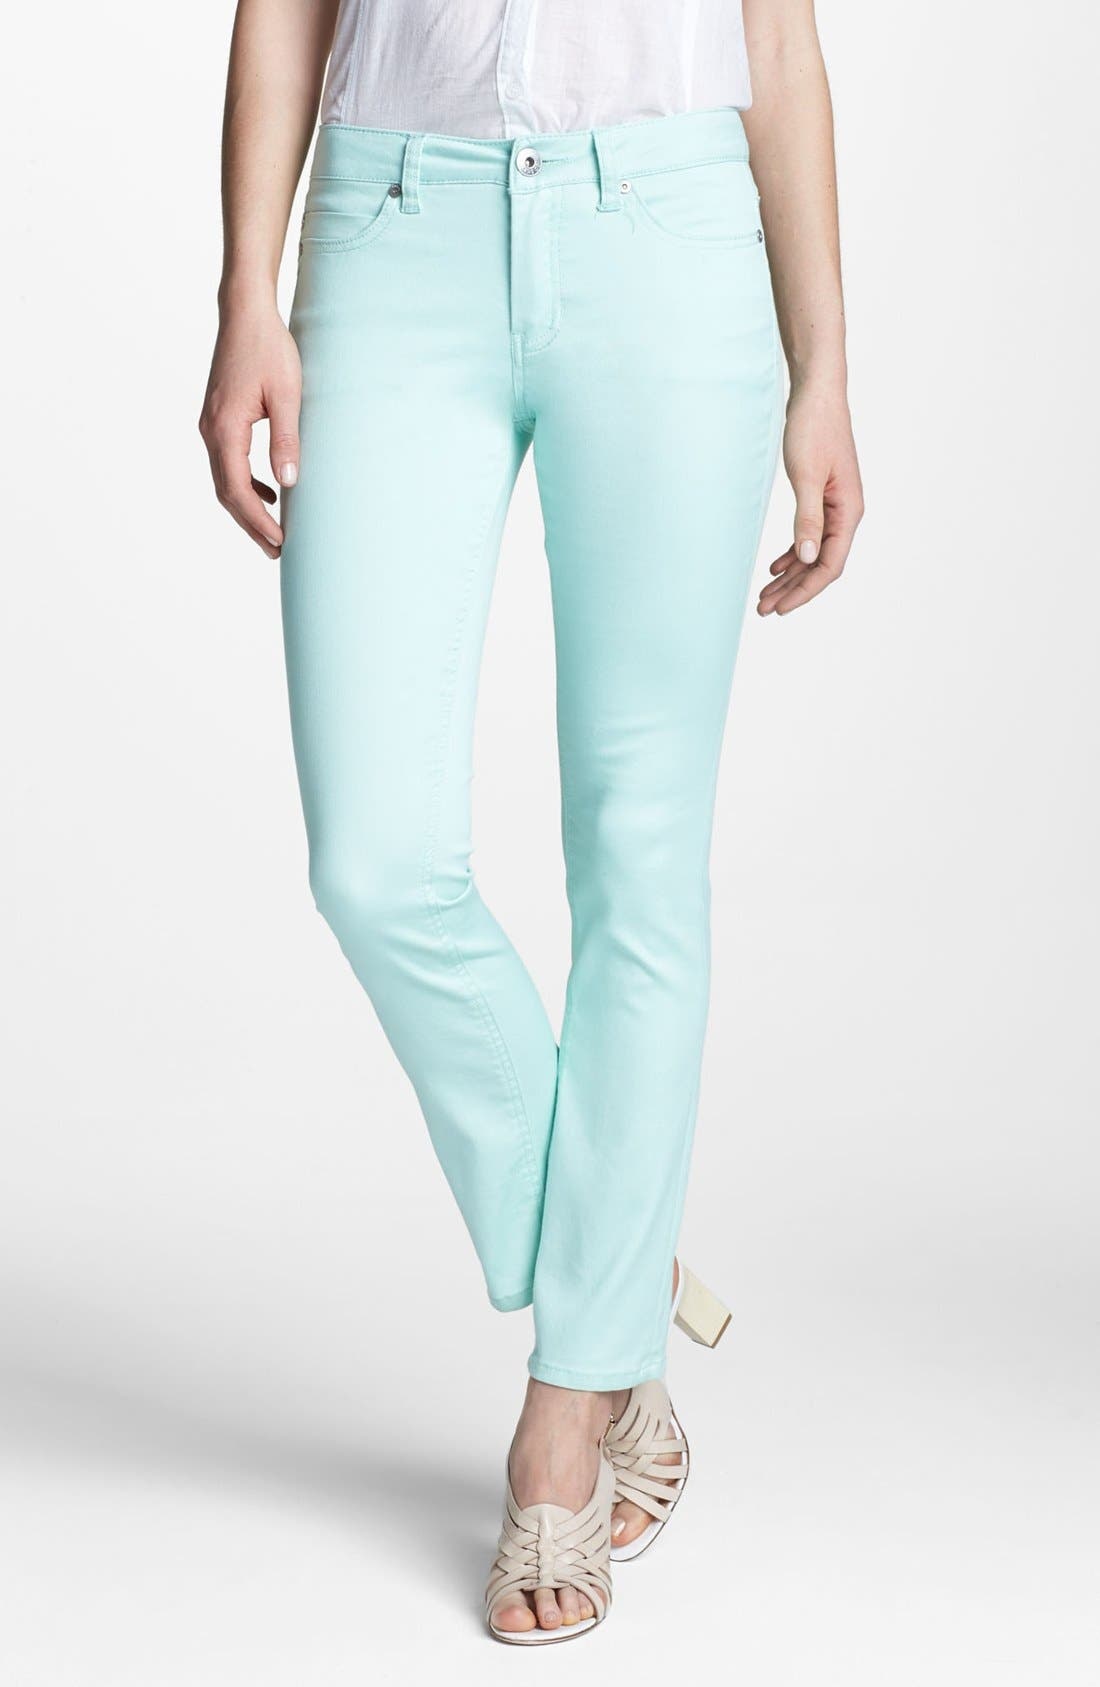 Main Image - Liverpool Jeans Company 'Sadie' Colored Straight Leg Stretch Jeans (Petite) (Online Only)